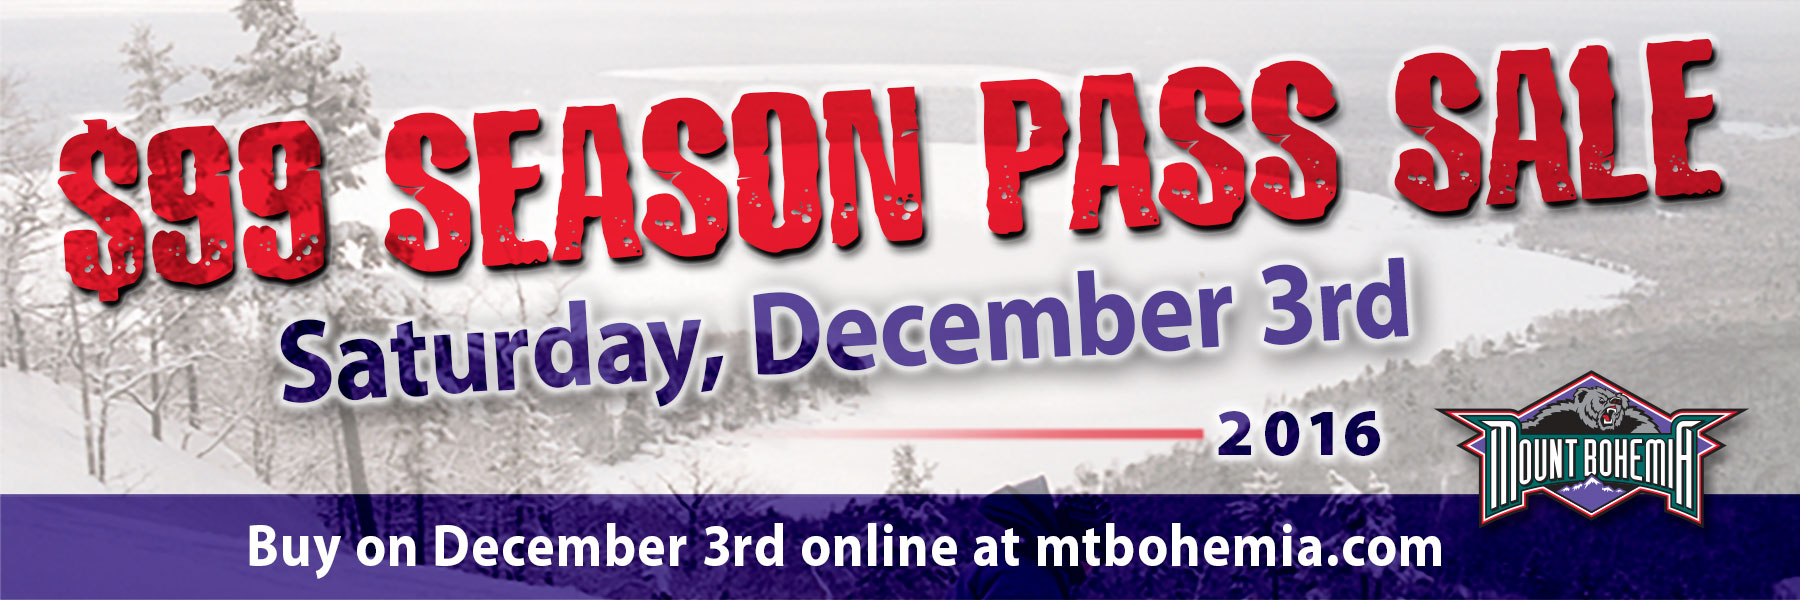 99 dollar season pass sale